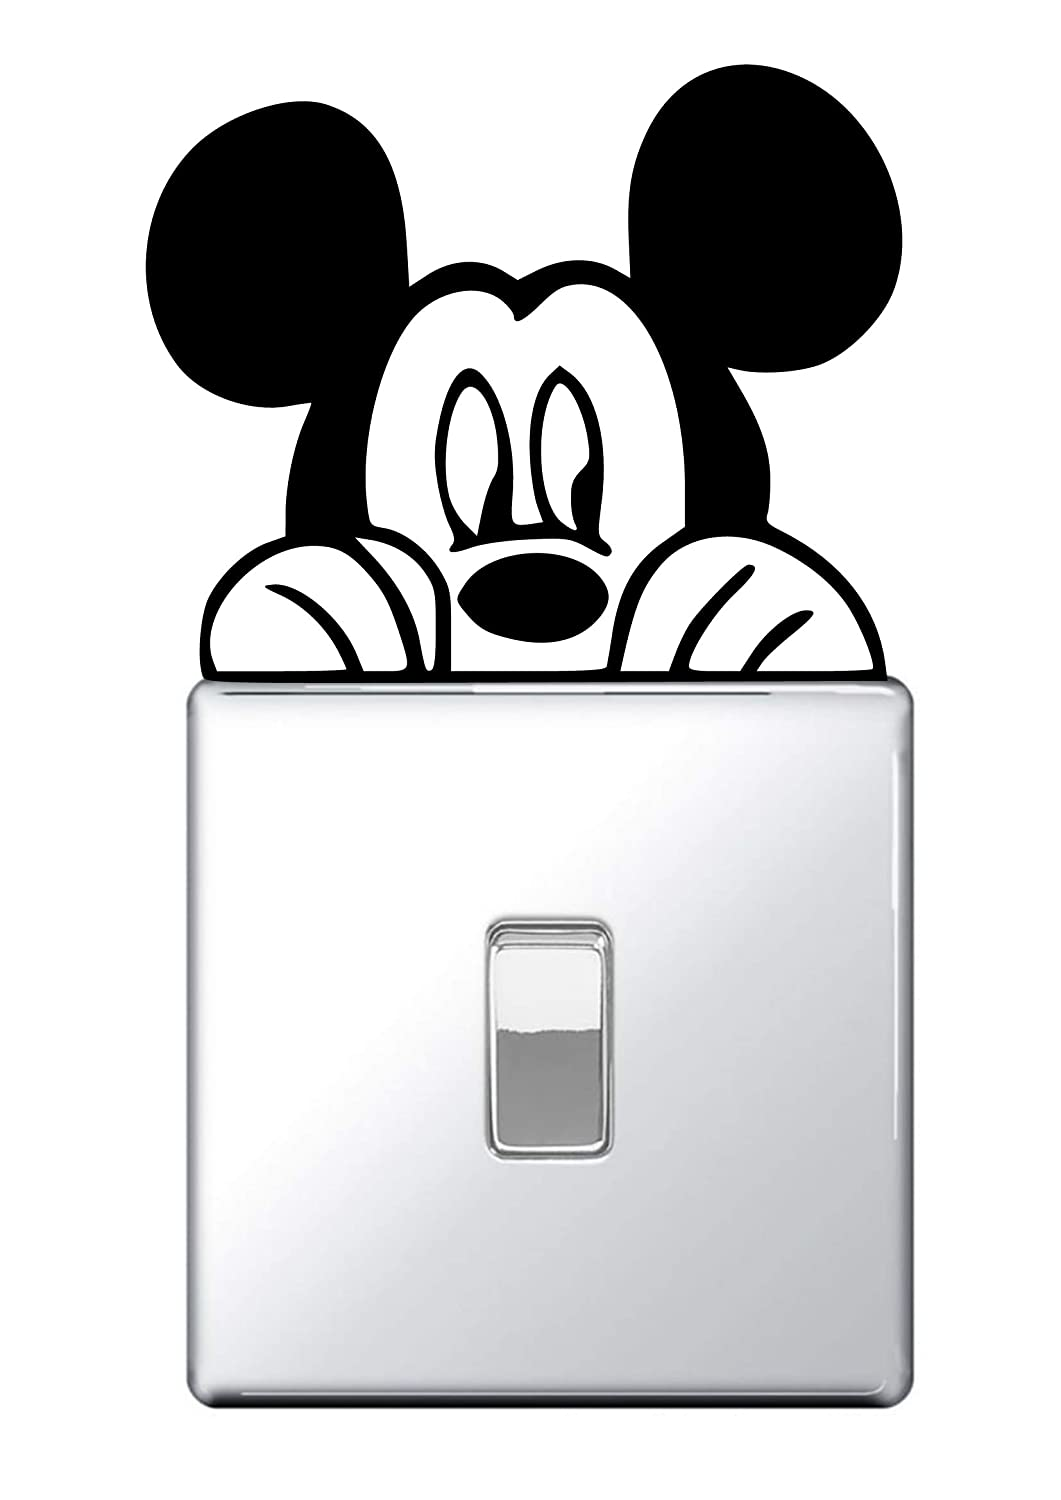 Mickey Mouse Light switch Wall Sticker Vinyl Decal Minnie Funny Boys Kids (Black) #1 Pro Cut Graphics